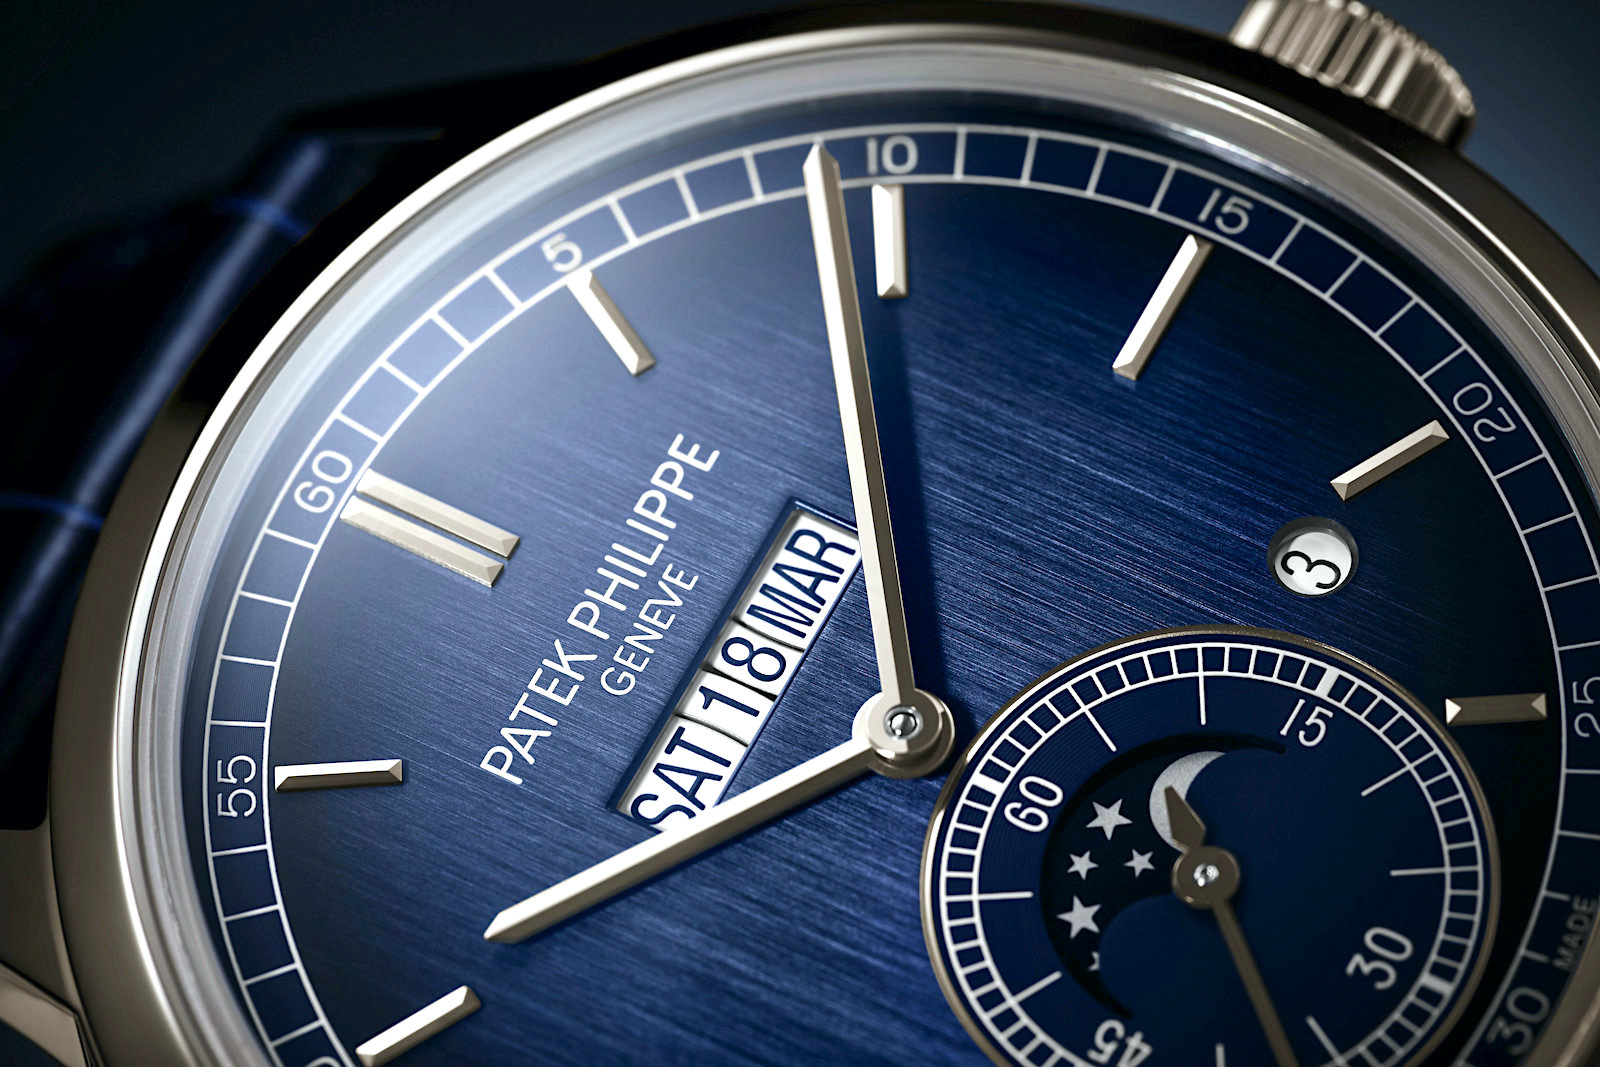 Patek Philippe 5236P In-Line Perpetual Calendar - dial finishing